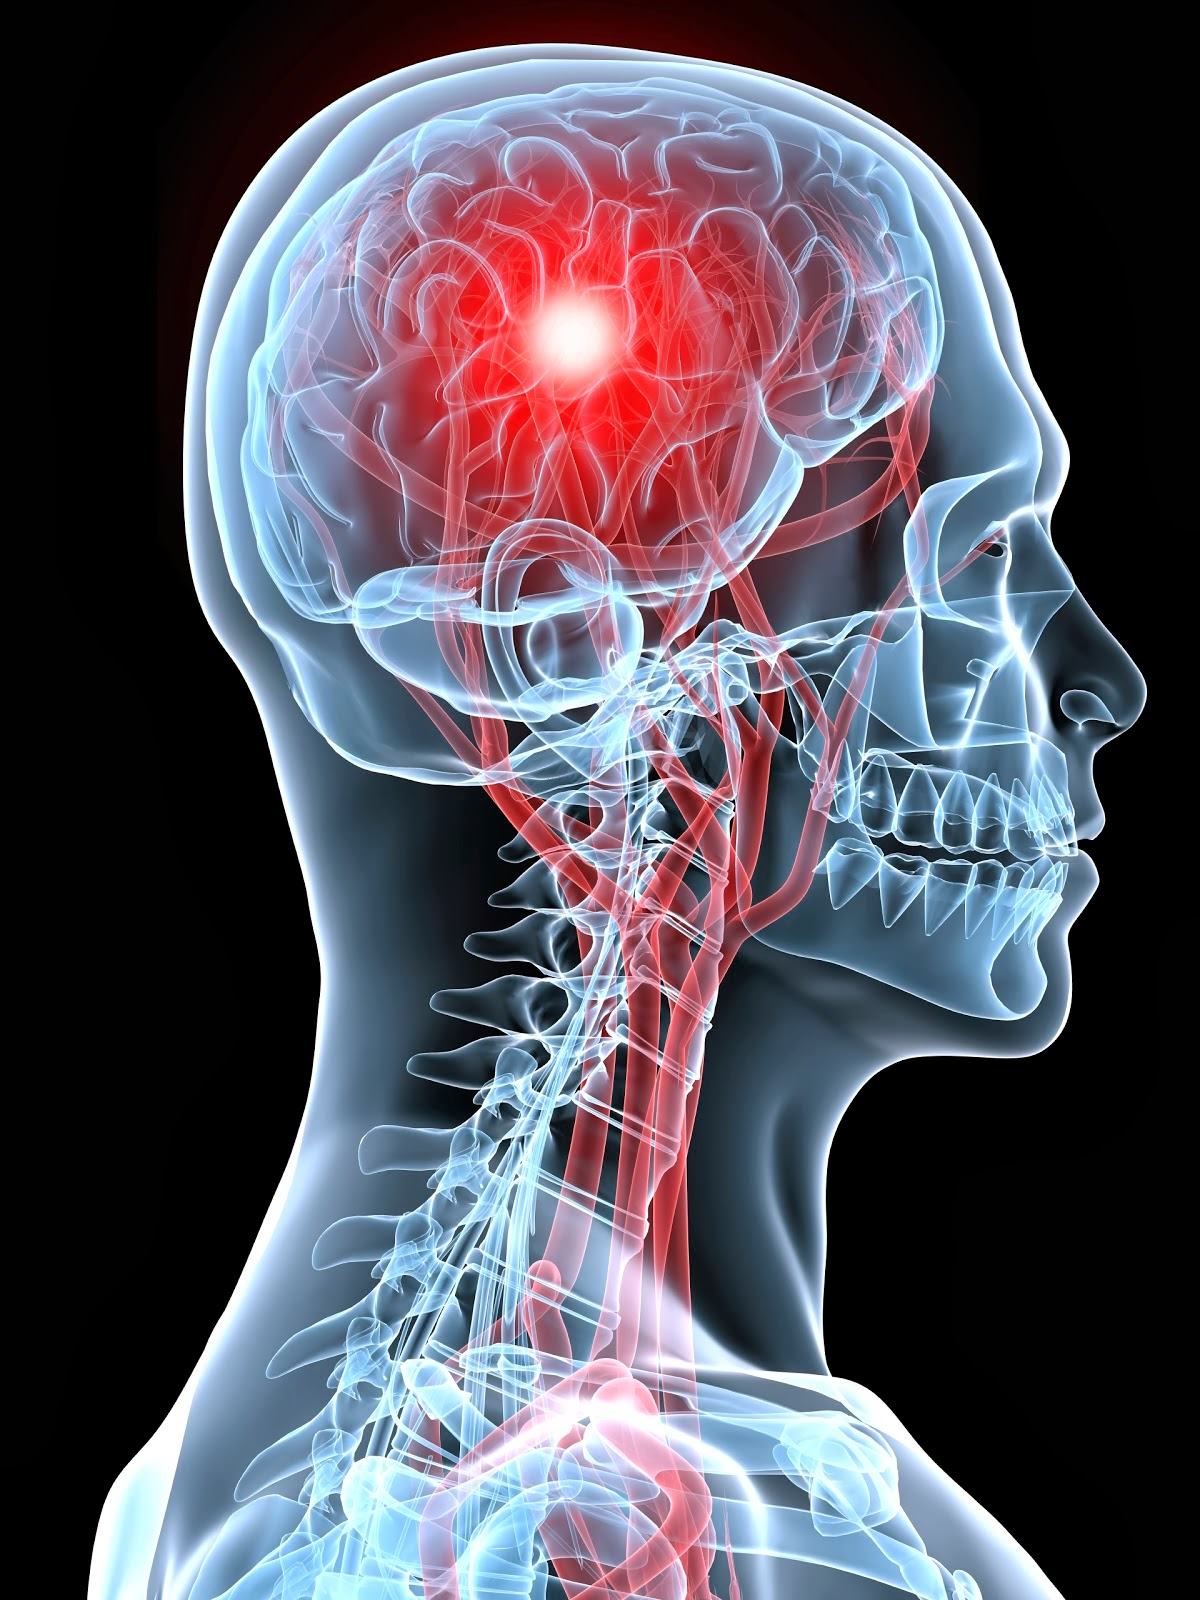 cva cerebrovascular accident The influence of heredity factors in cerebrovascular accidents was investigated  by studying the families of 80 patients with a clinical diagnosis of cva.